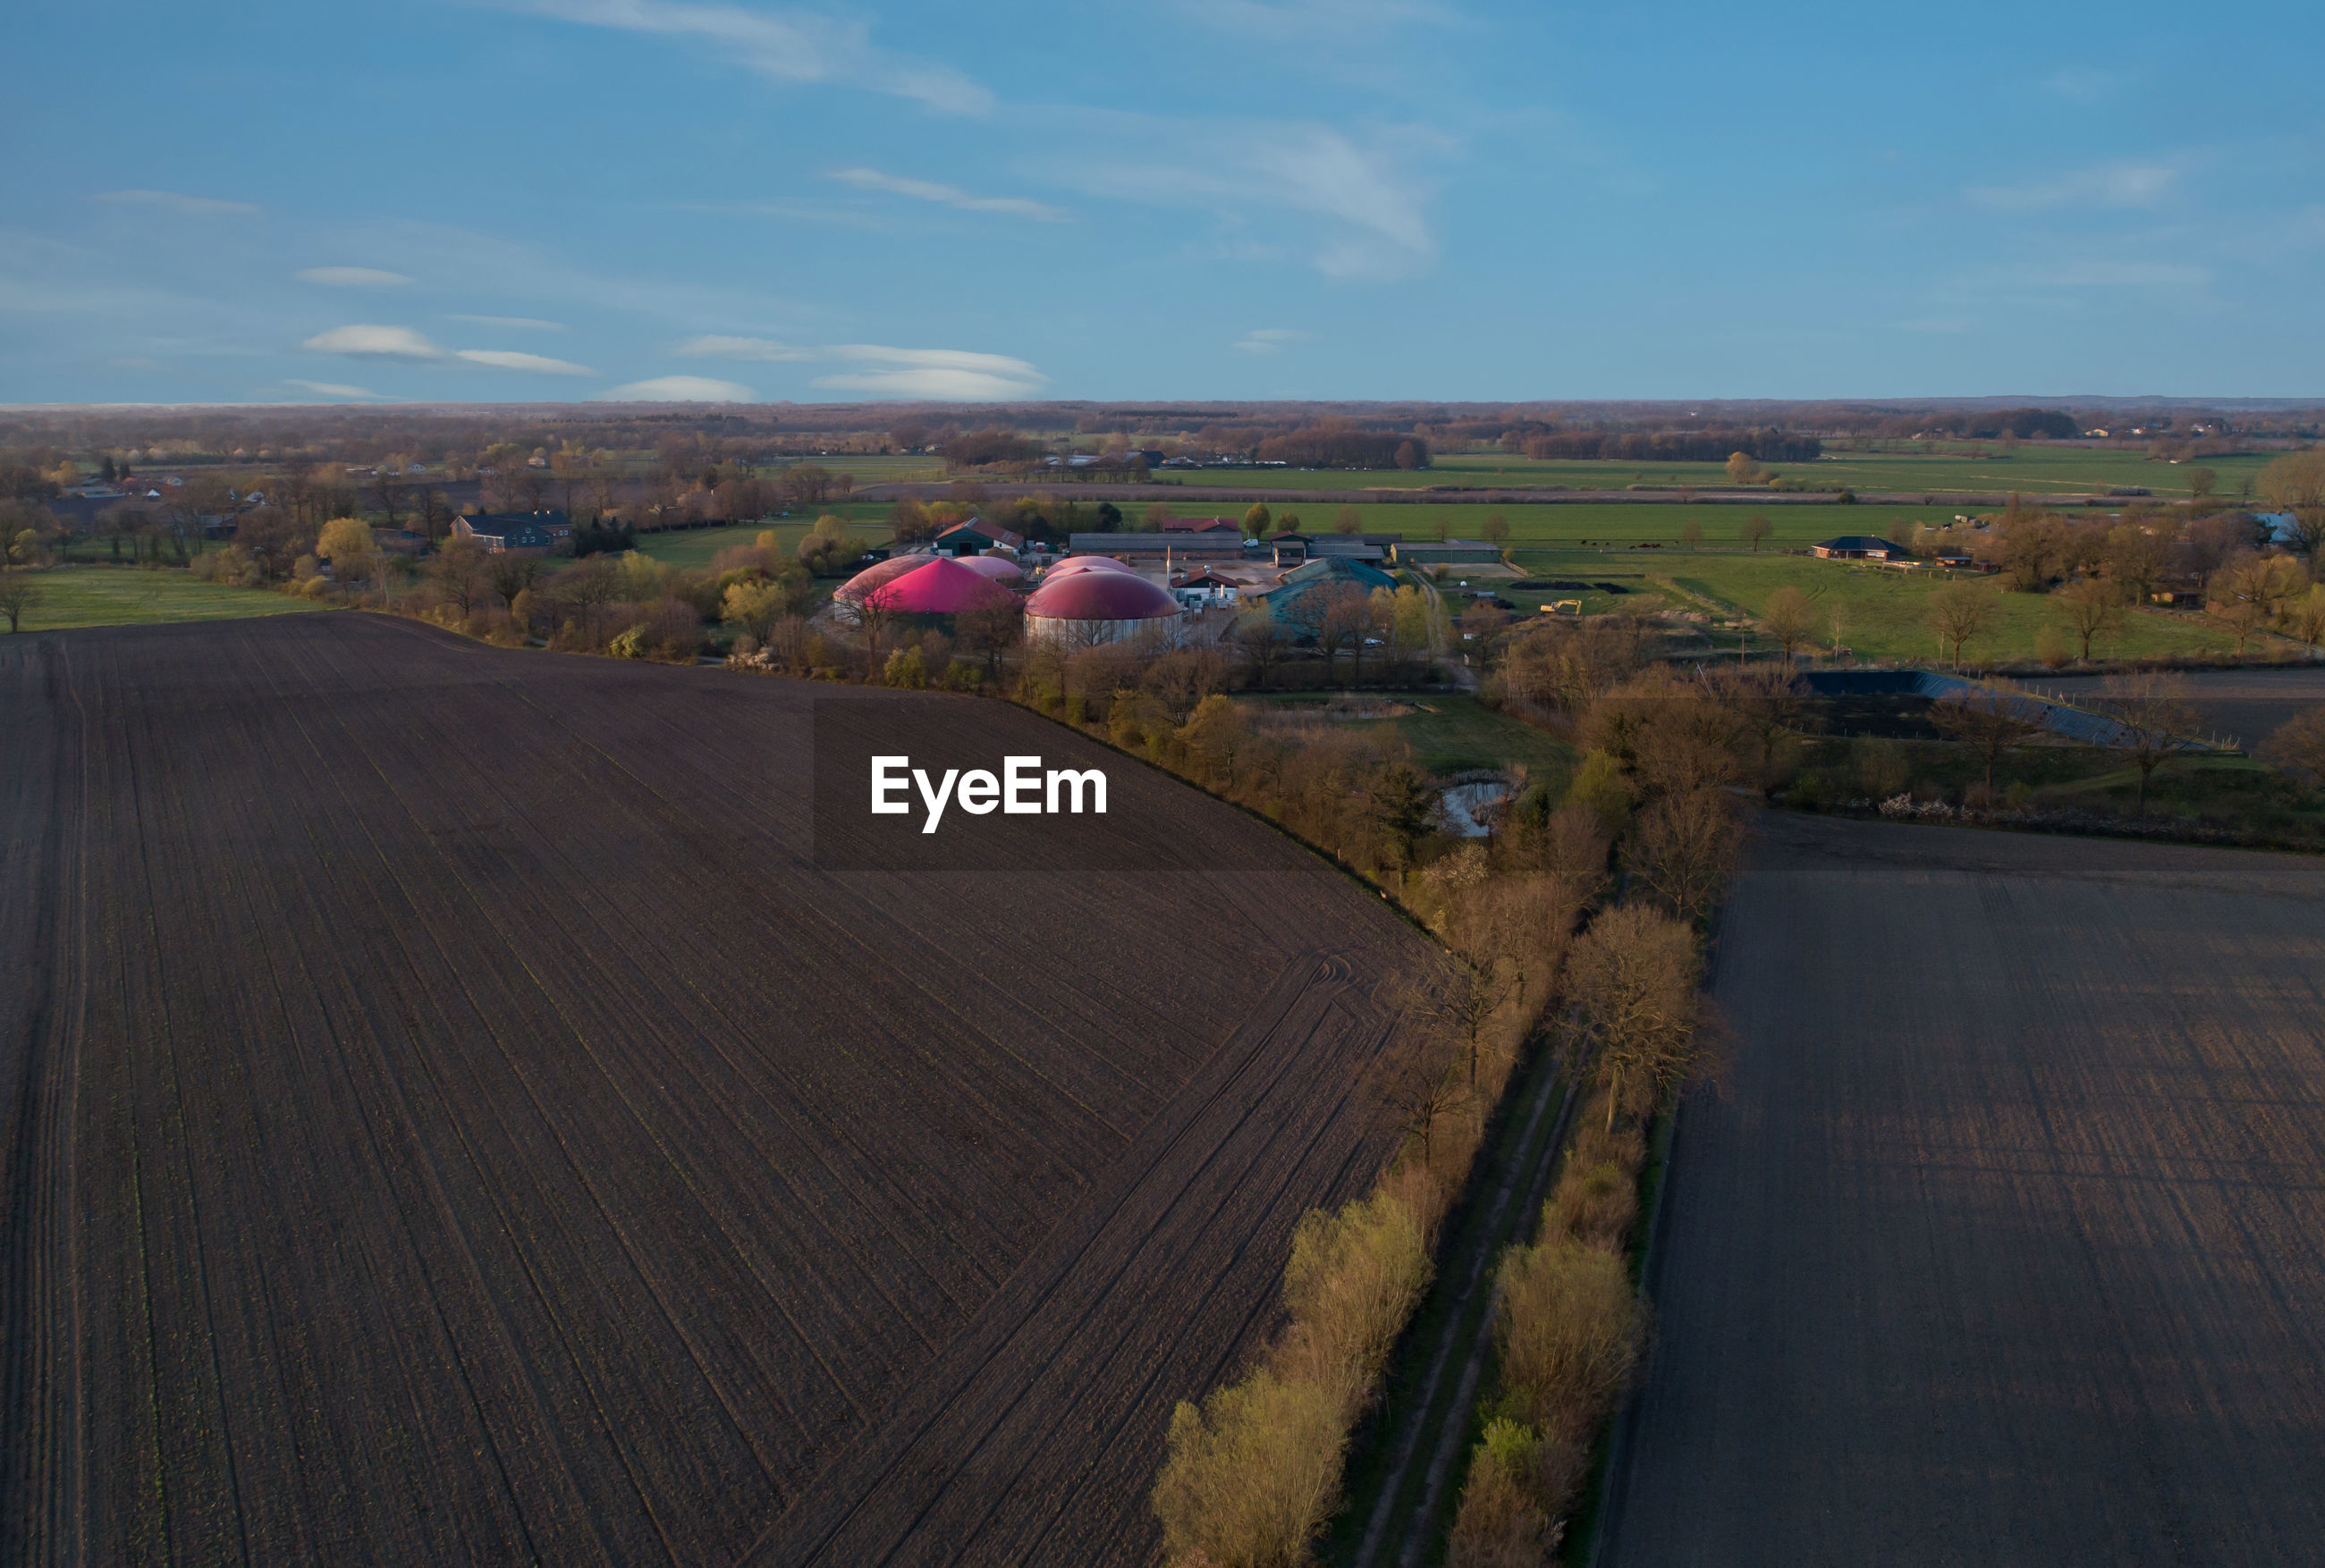 Biogas plant for generating electricity and generating energy during a drone flight